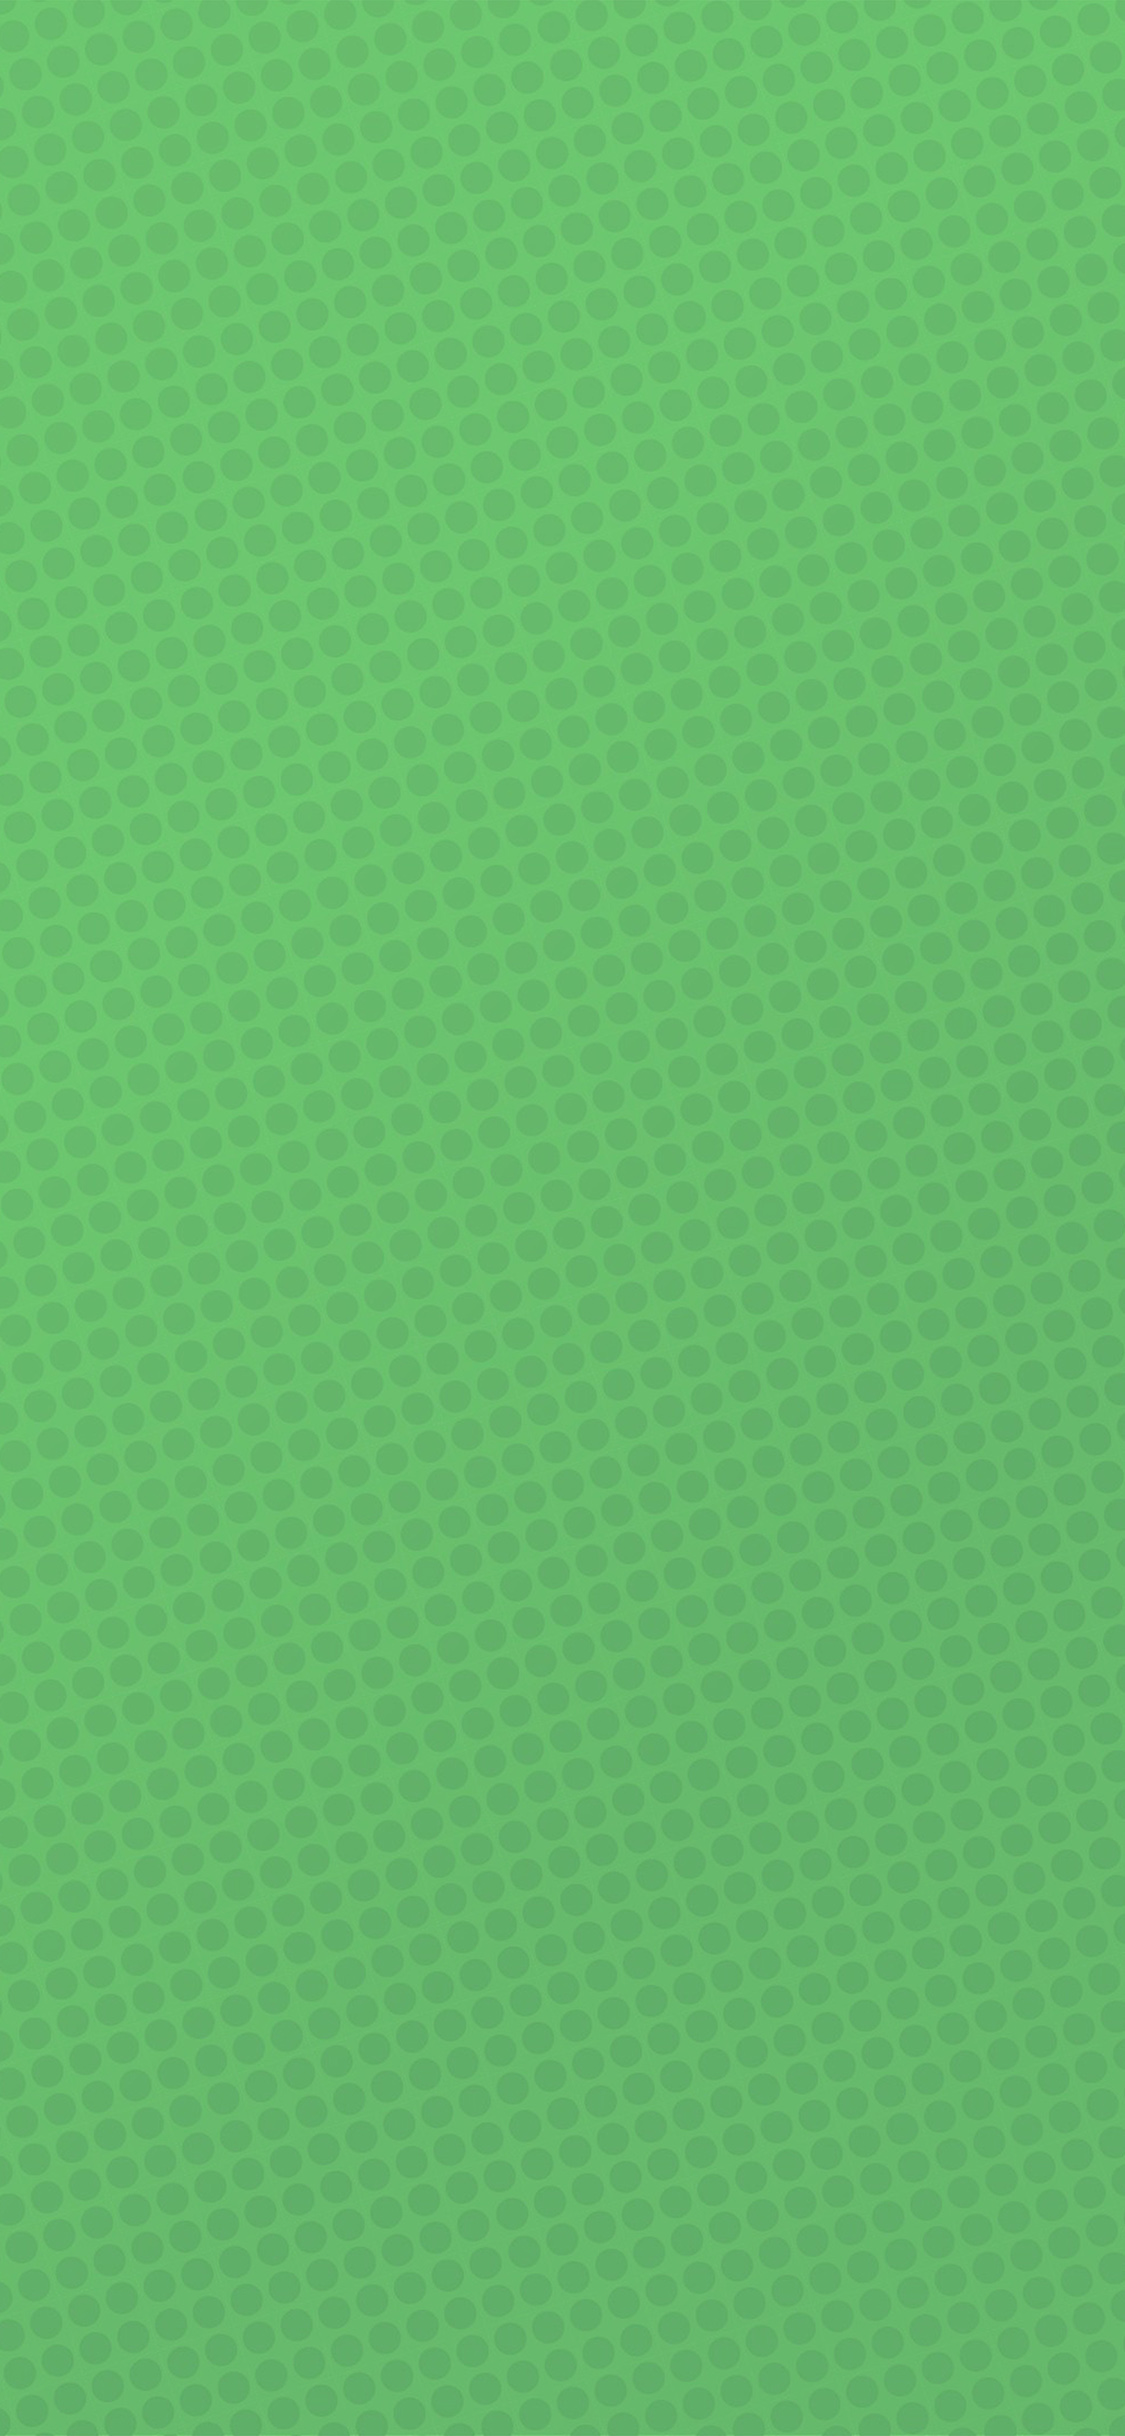 iPhoneXpapers.com-Apple-iPhone-wallpaper-vq46-green-dots-abstract-pattern